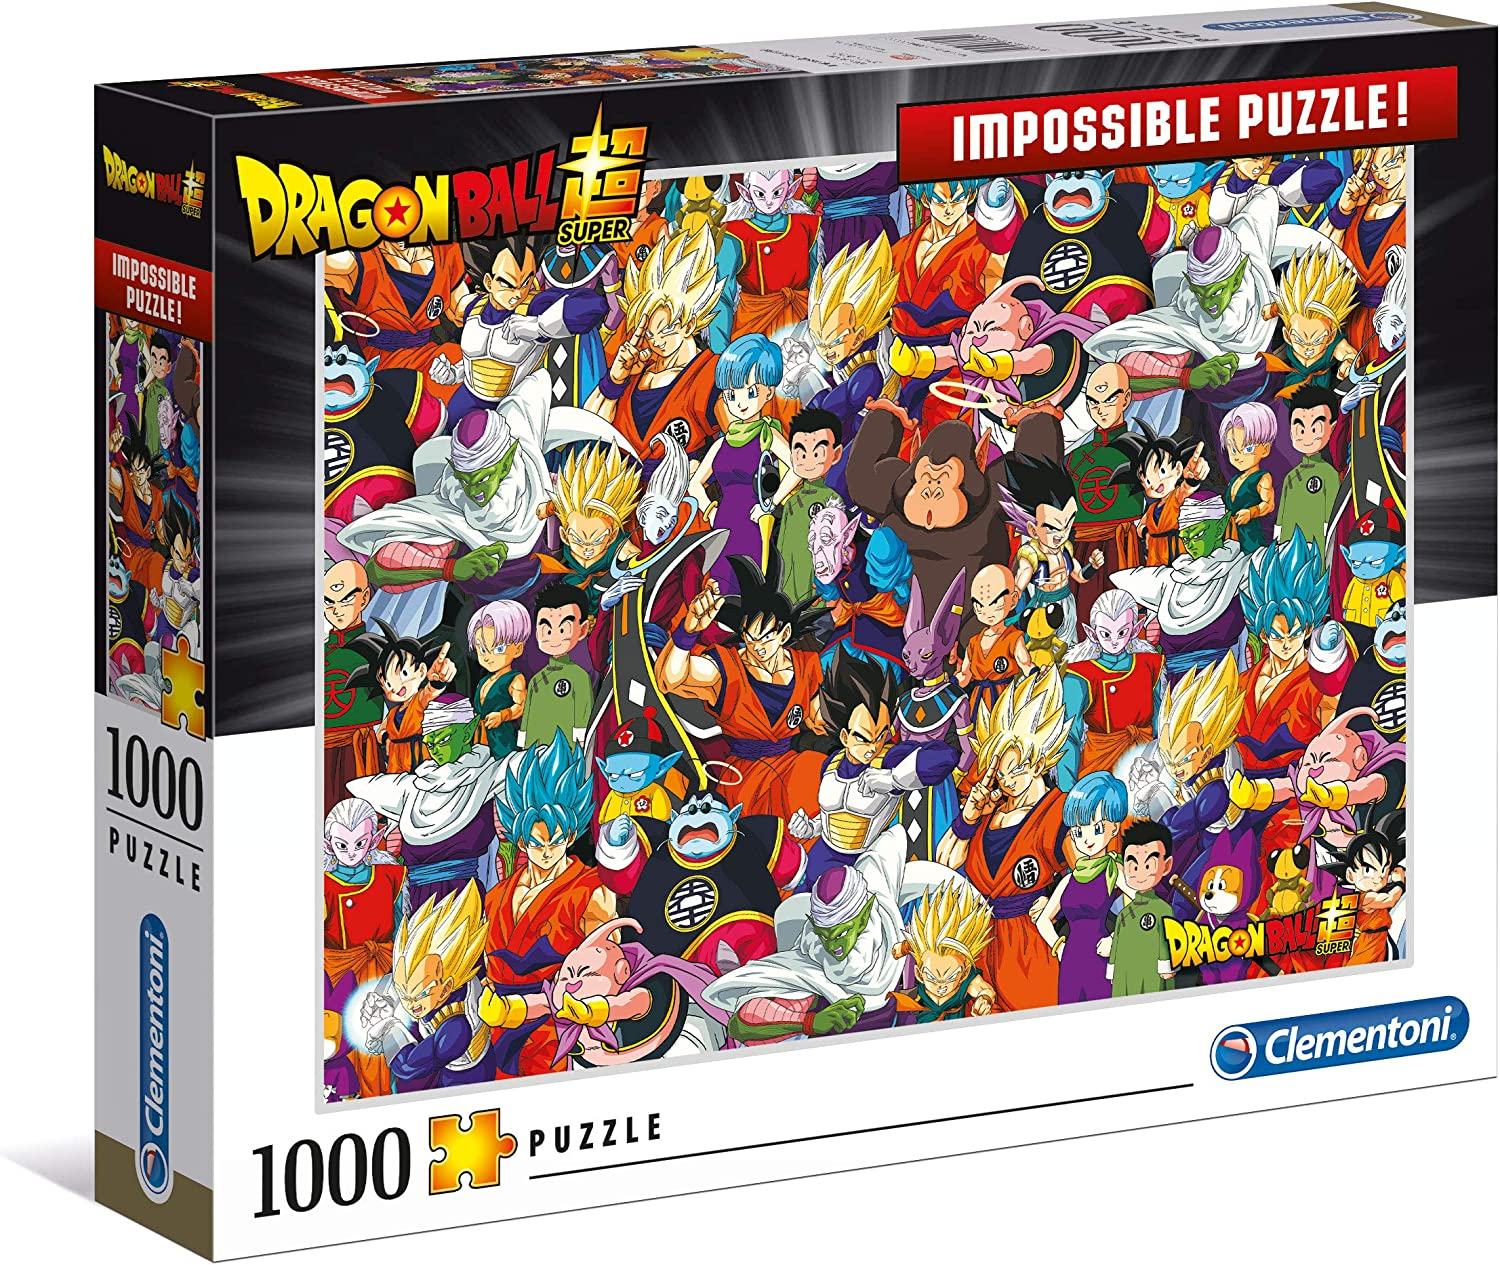 Clementoni- Impossible Puzzle-Dragon Ball-1000 pièces, Multicolor ...